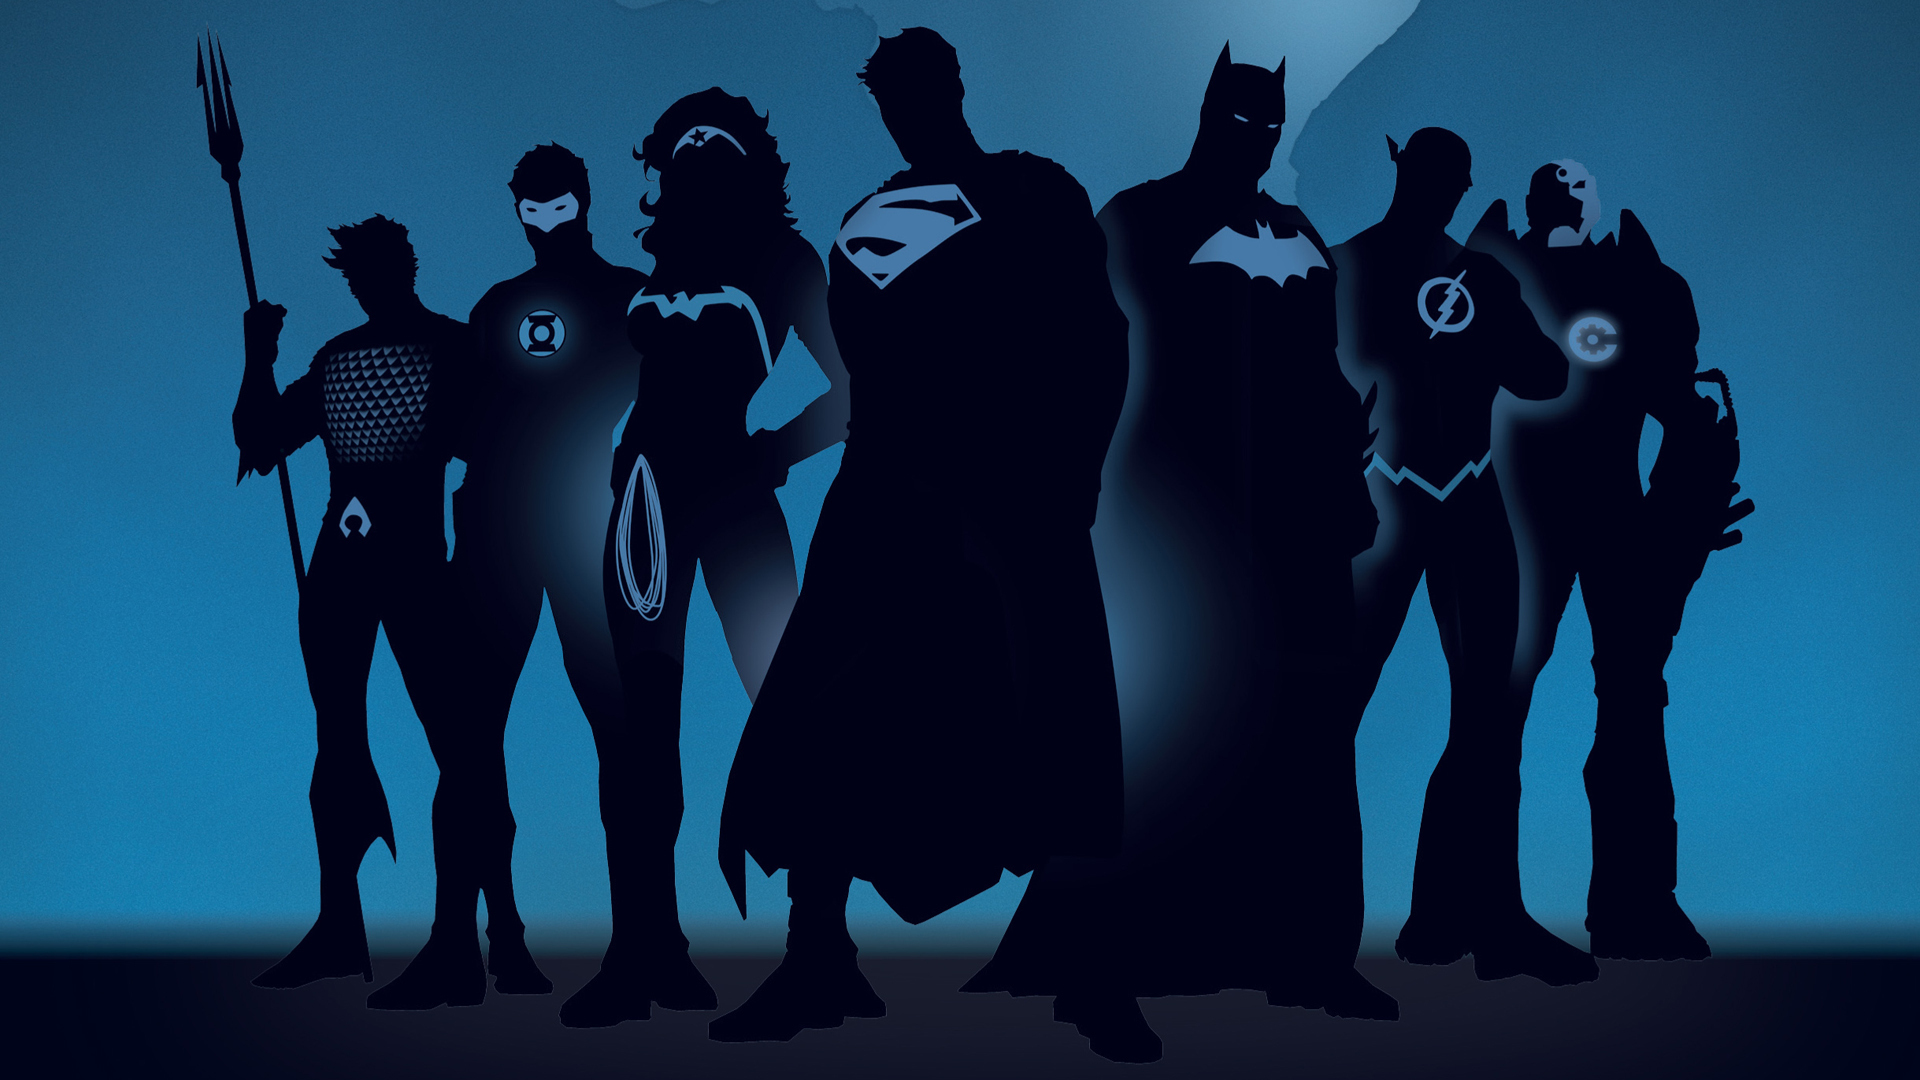 Justice League Computer Wallpapers Desktop Backgrounds 1920x1080 1920x1080